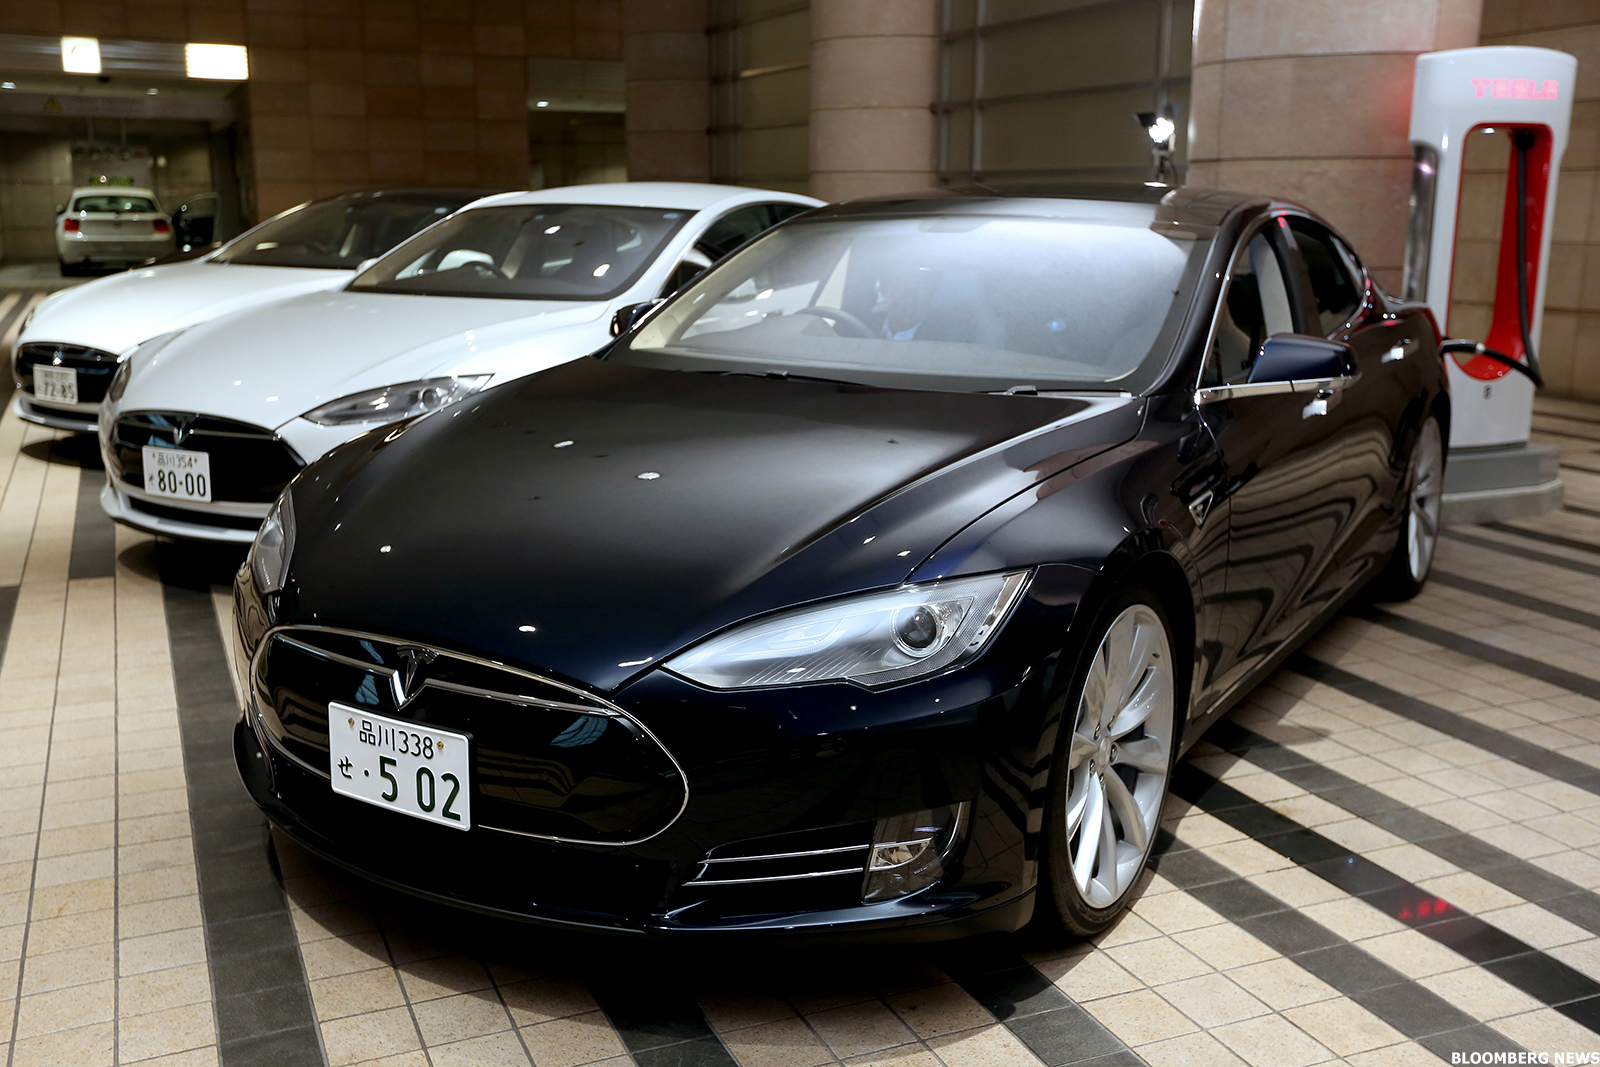 Tesla Tsla Stock Gets A Boost After Surpassing 10 000 Deliveries In First Quarter Thestreet